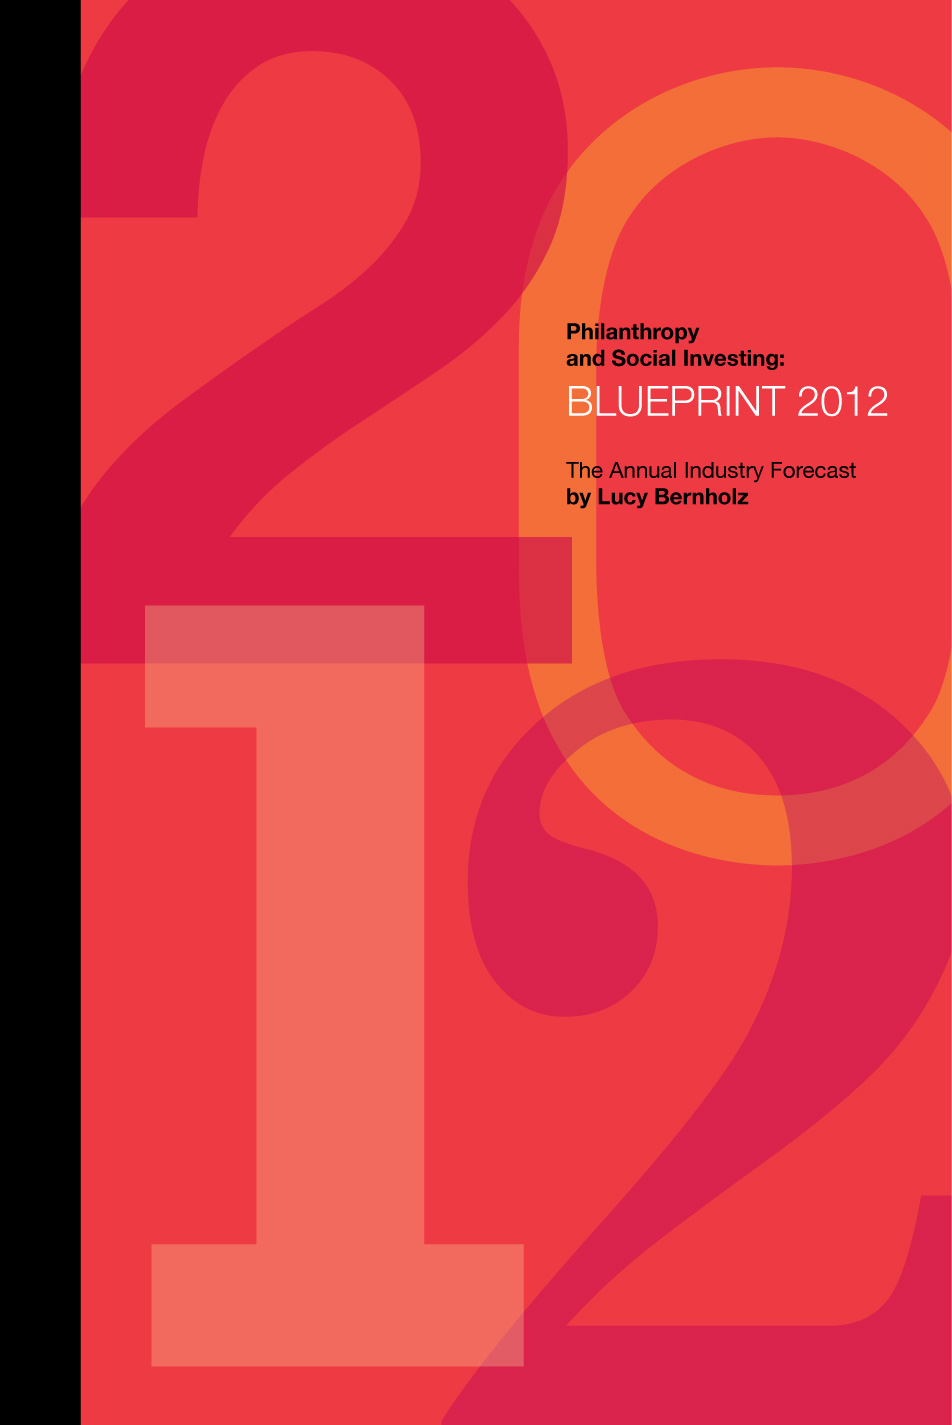 Philanthropy and Social Investing: Blueprint 2010